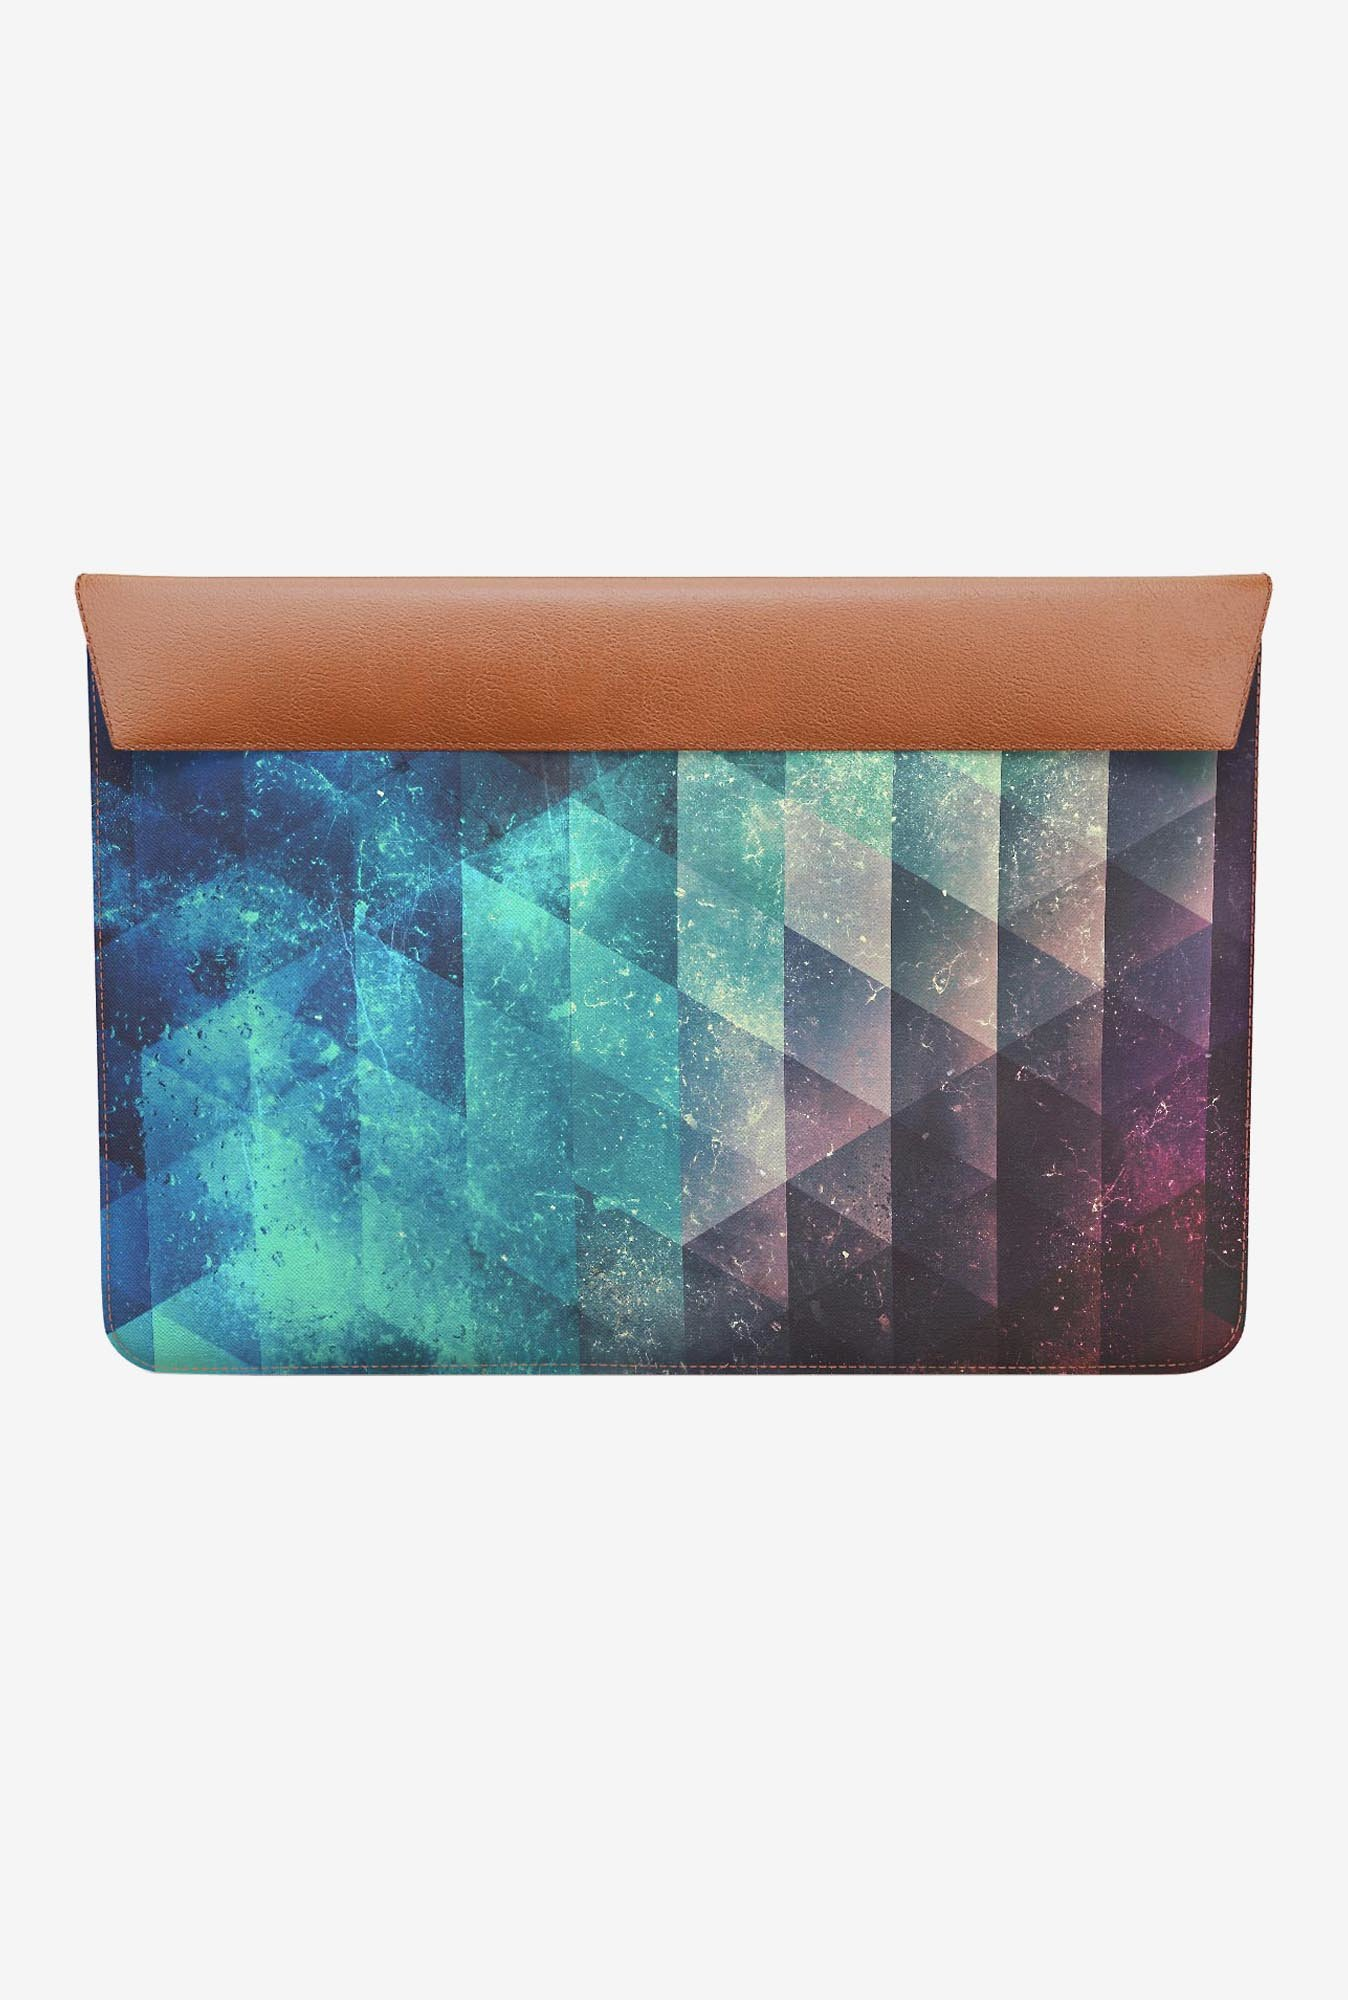 "DailyObjects Brynk Drynk Macbook Pro 13"" Envelope Sleeve"